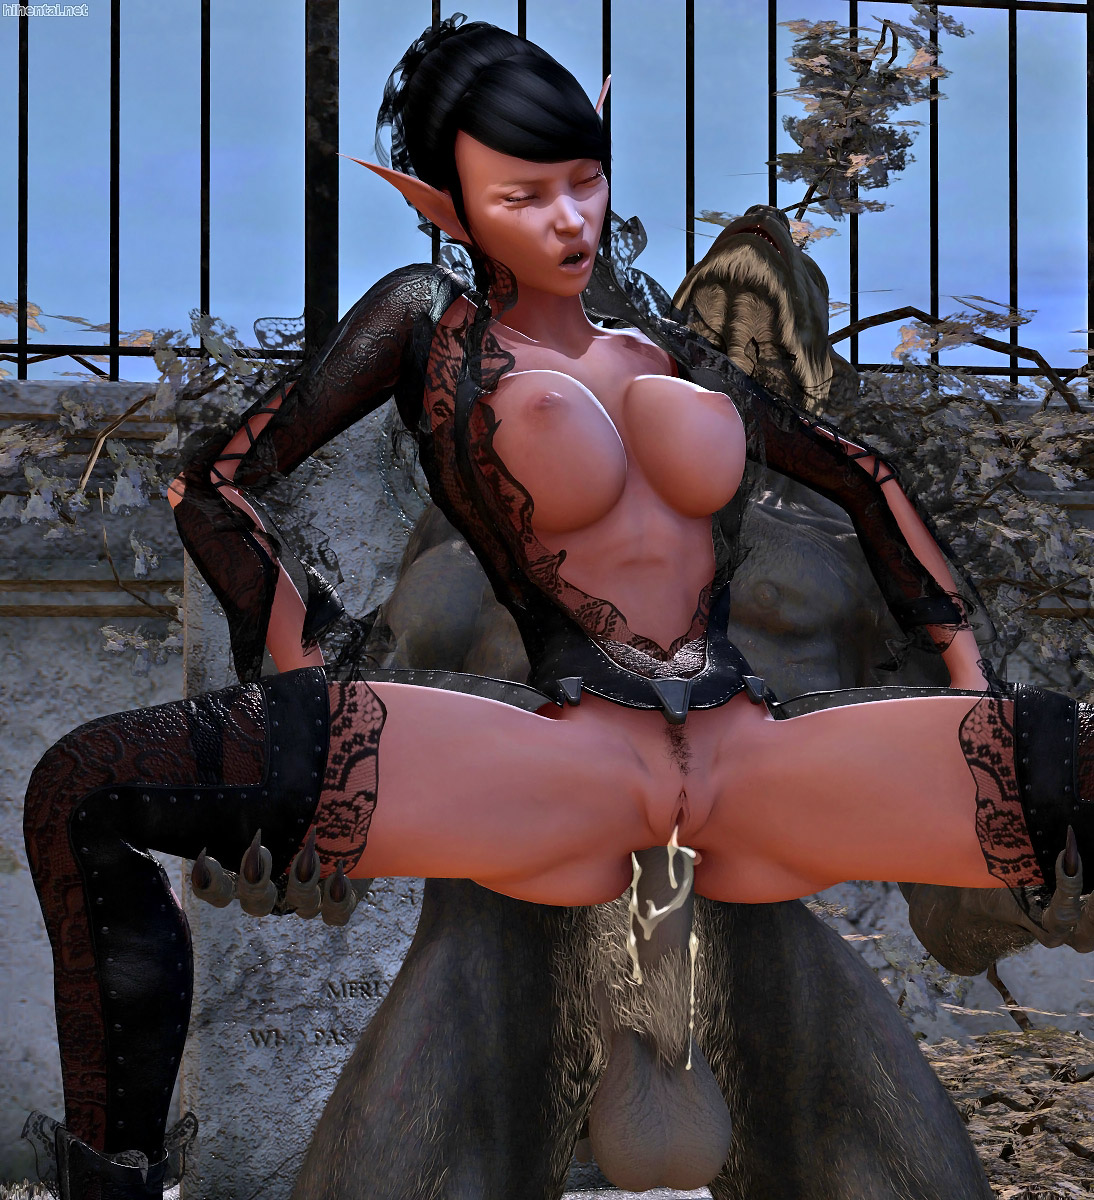 Elf girl gangbanged by orcs youporn nude video